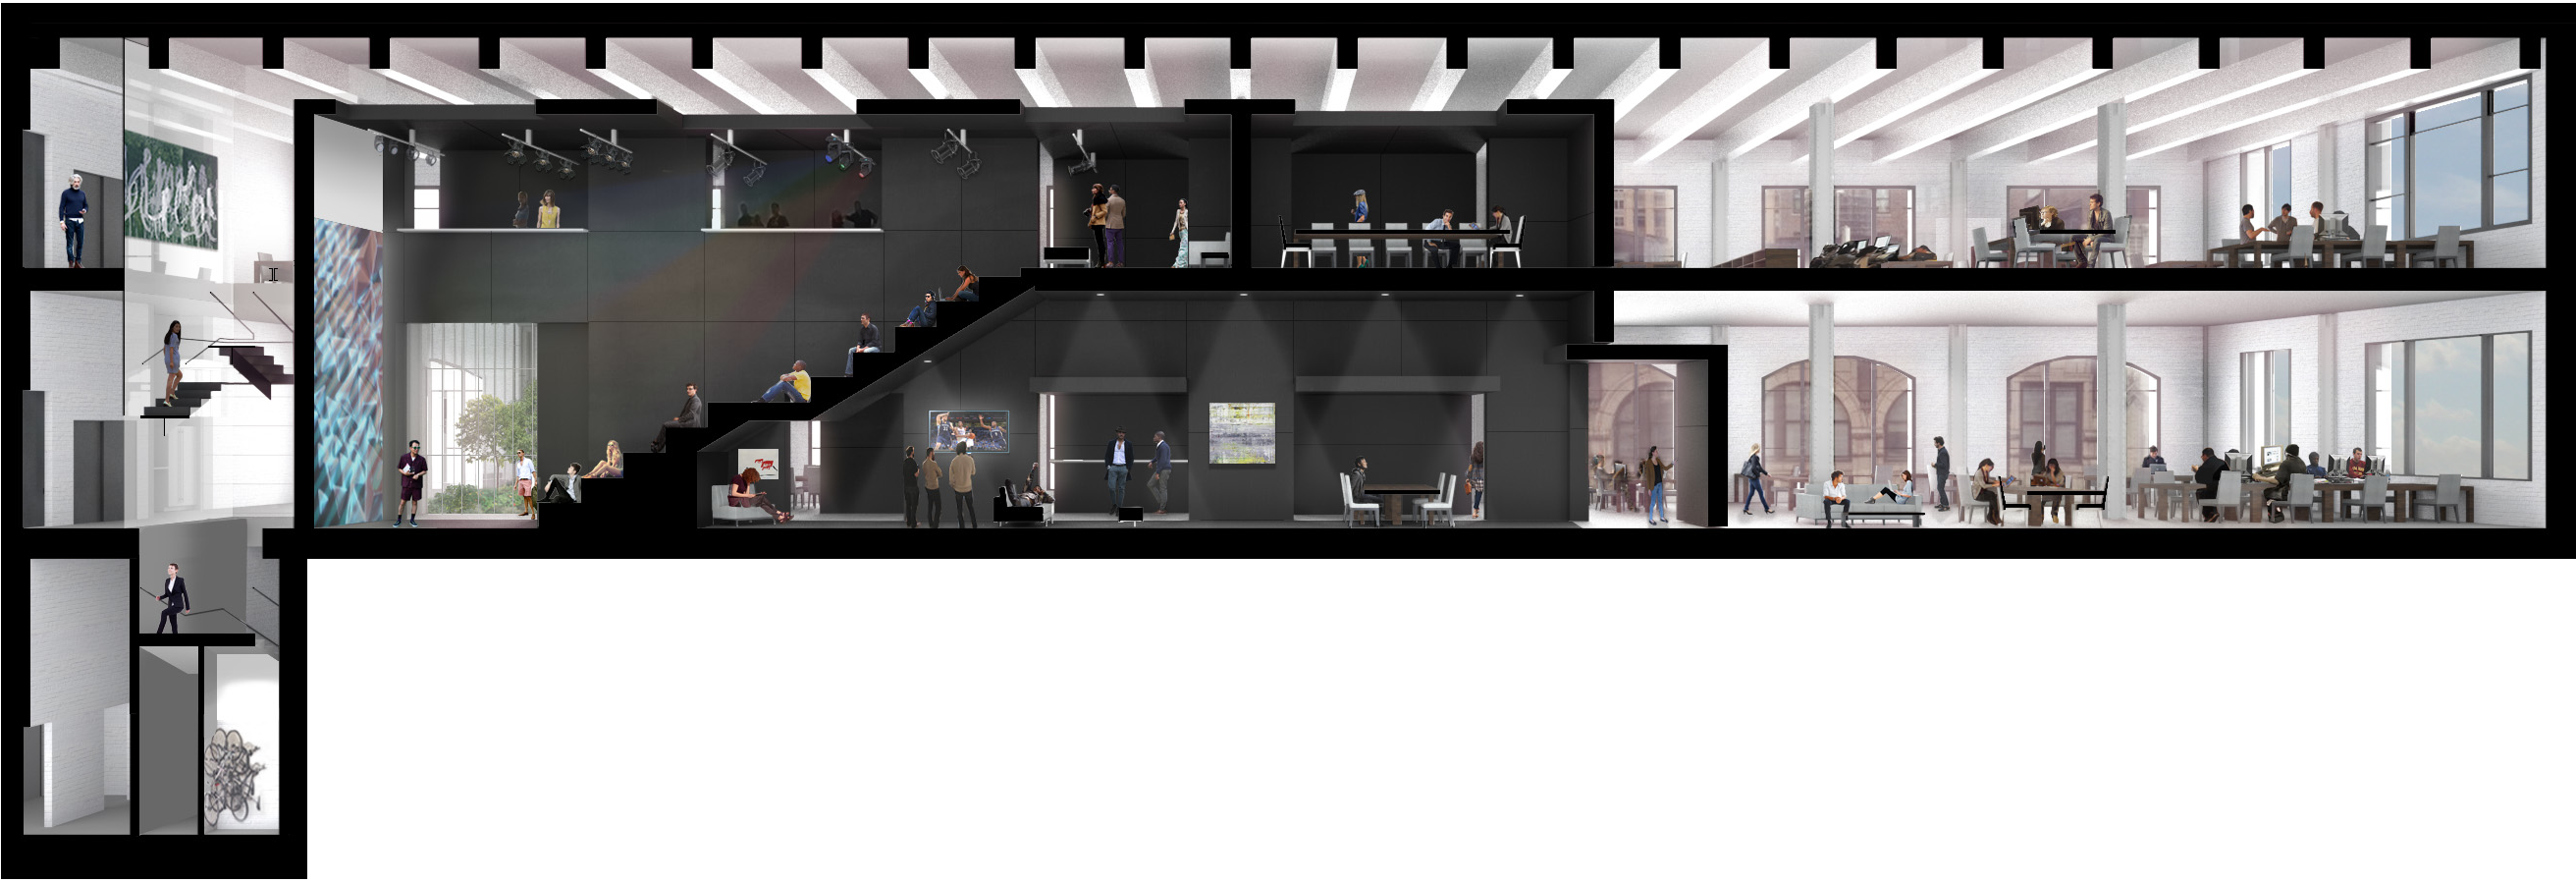 Inside The Design Of The New Gawker Media And Gizmodo Offices